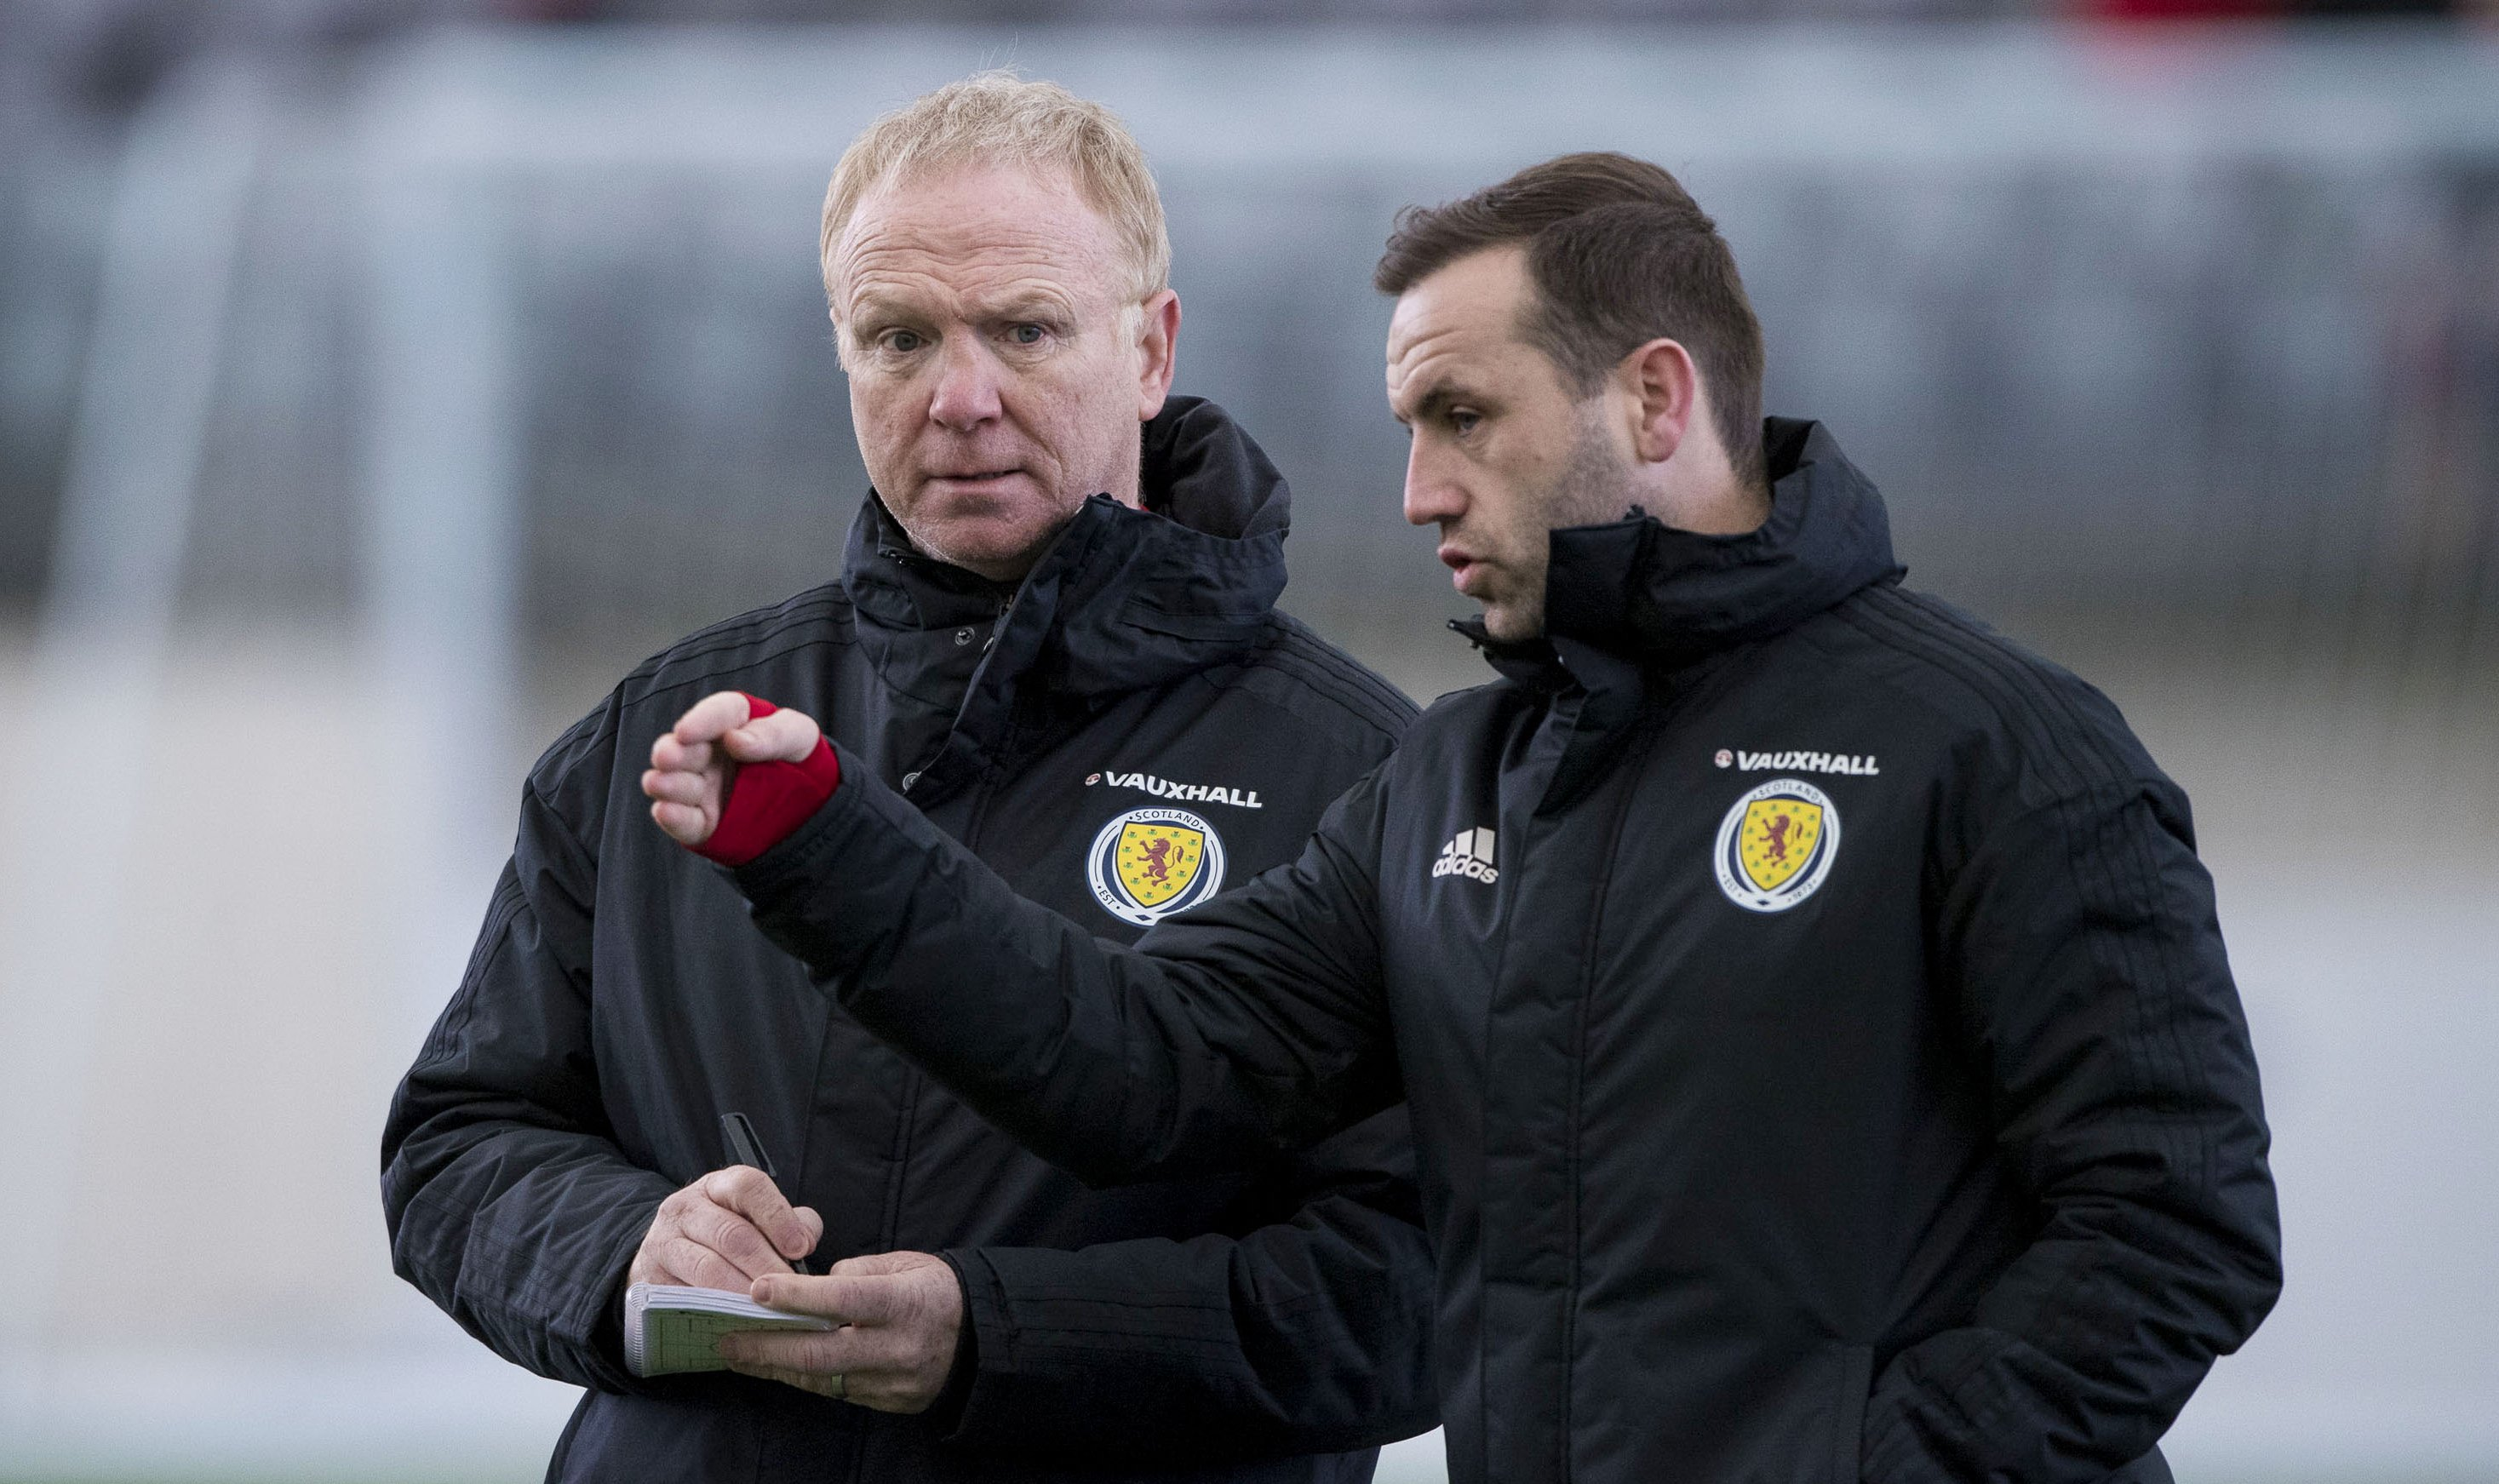 Alex McLeish and James McFadden